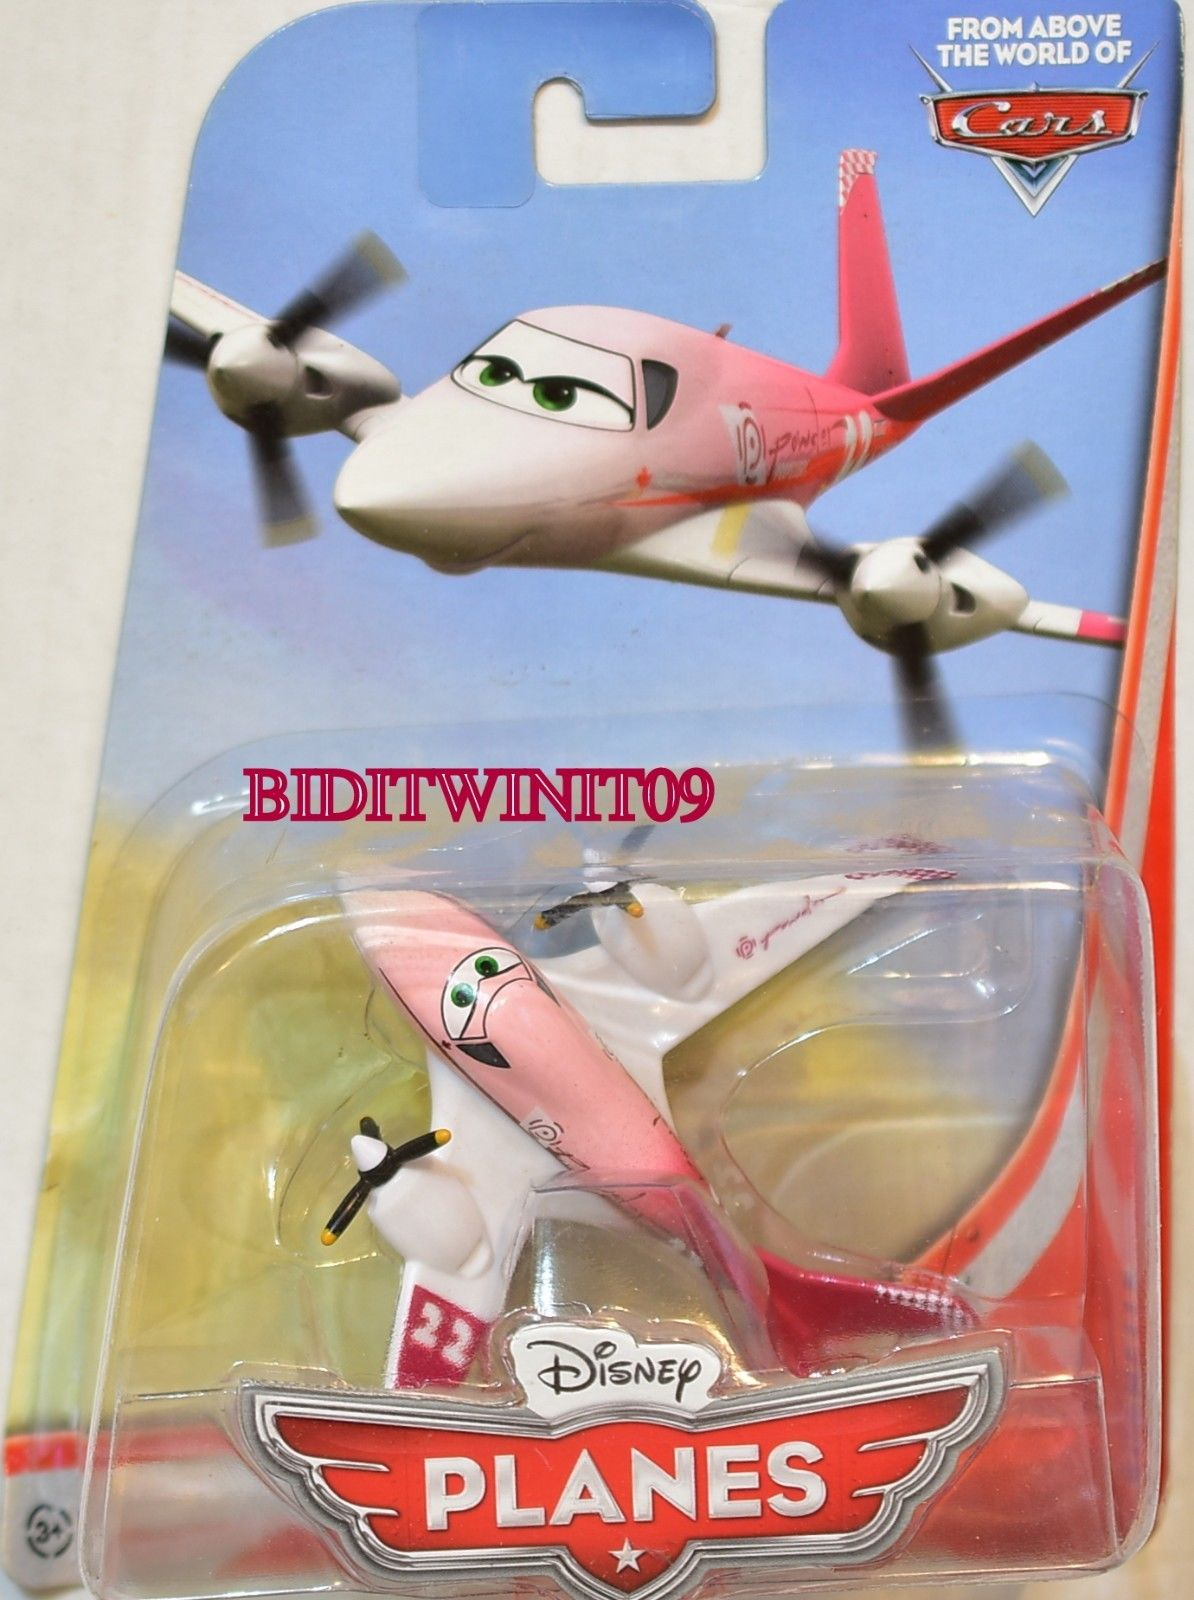 DISNEY PLANES FROM ABOVE THE WORLD OF CARS ROCHELLE